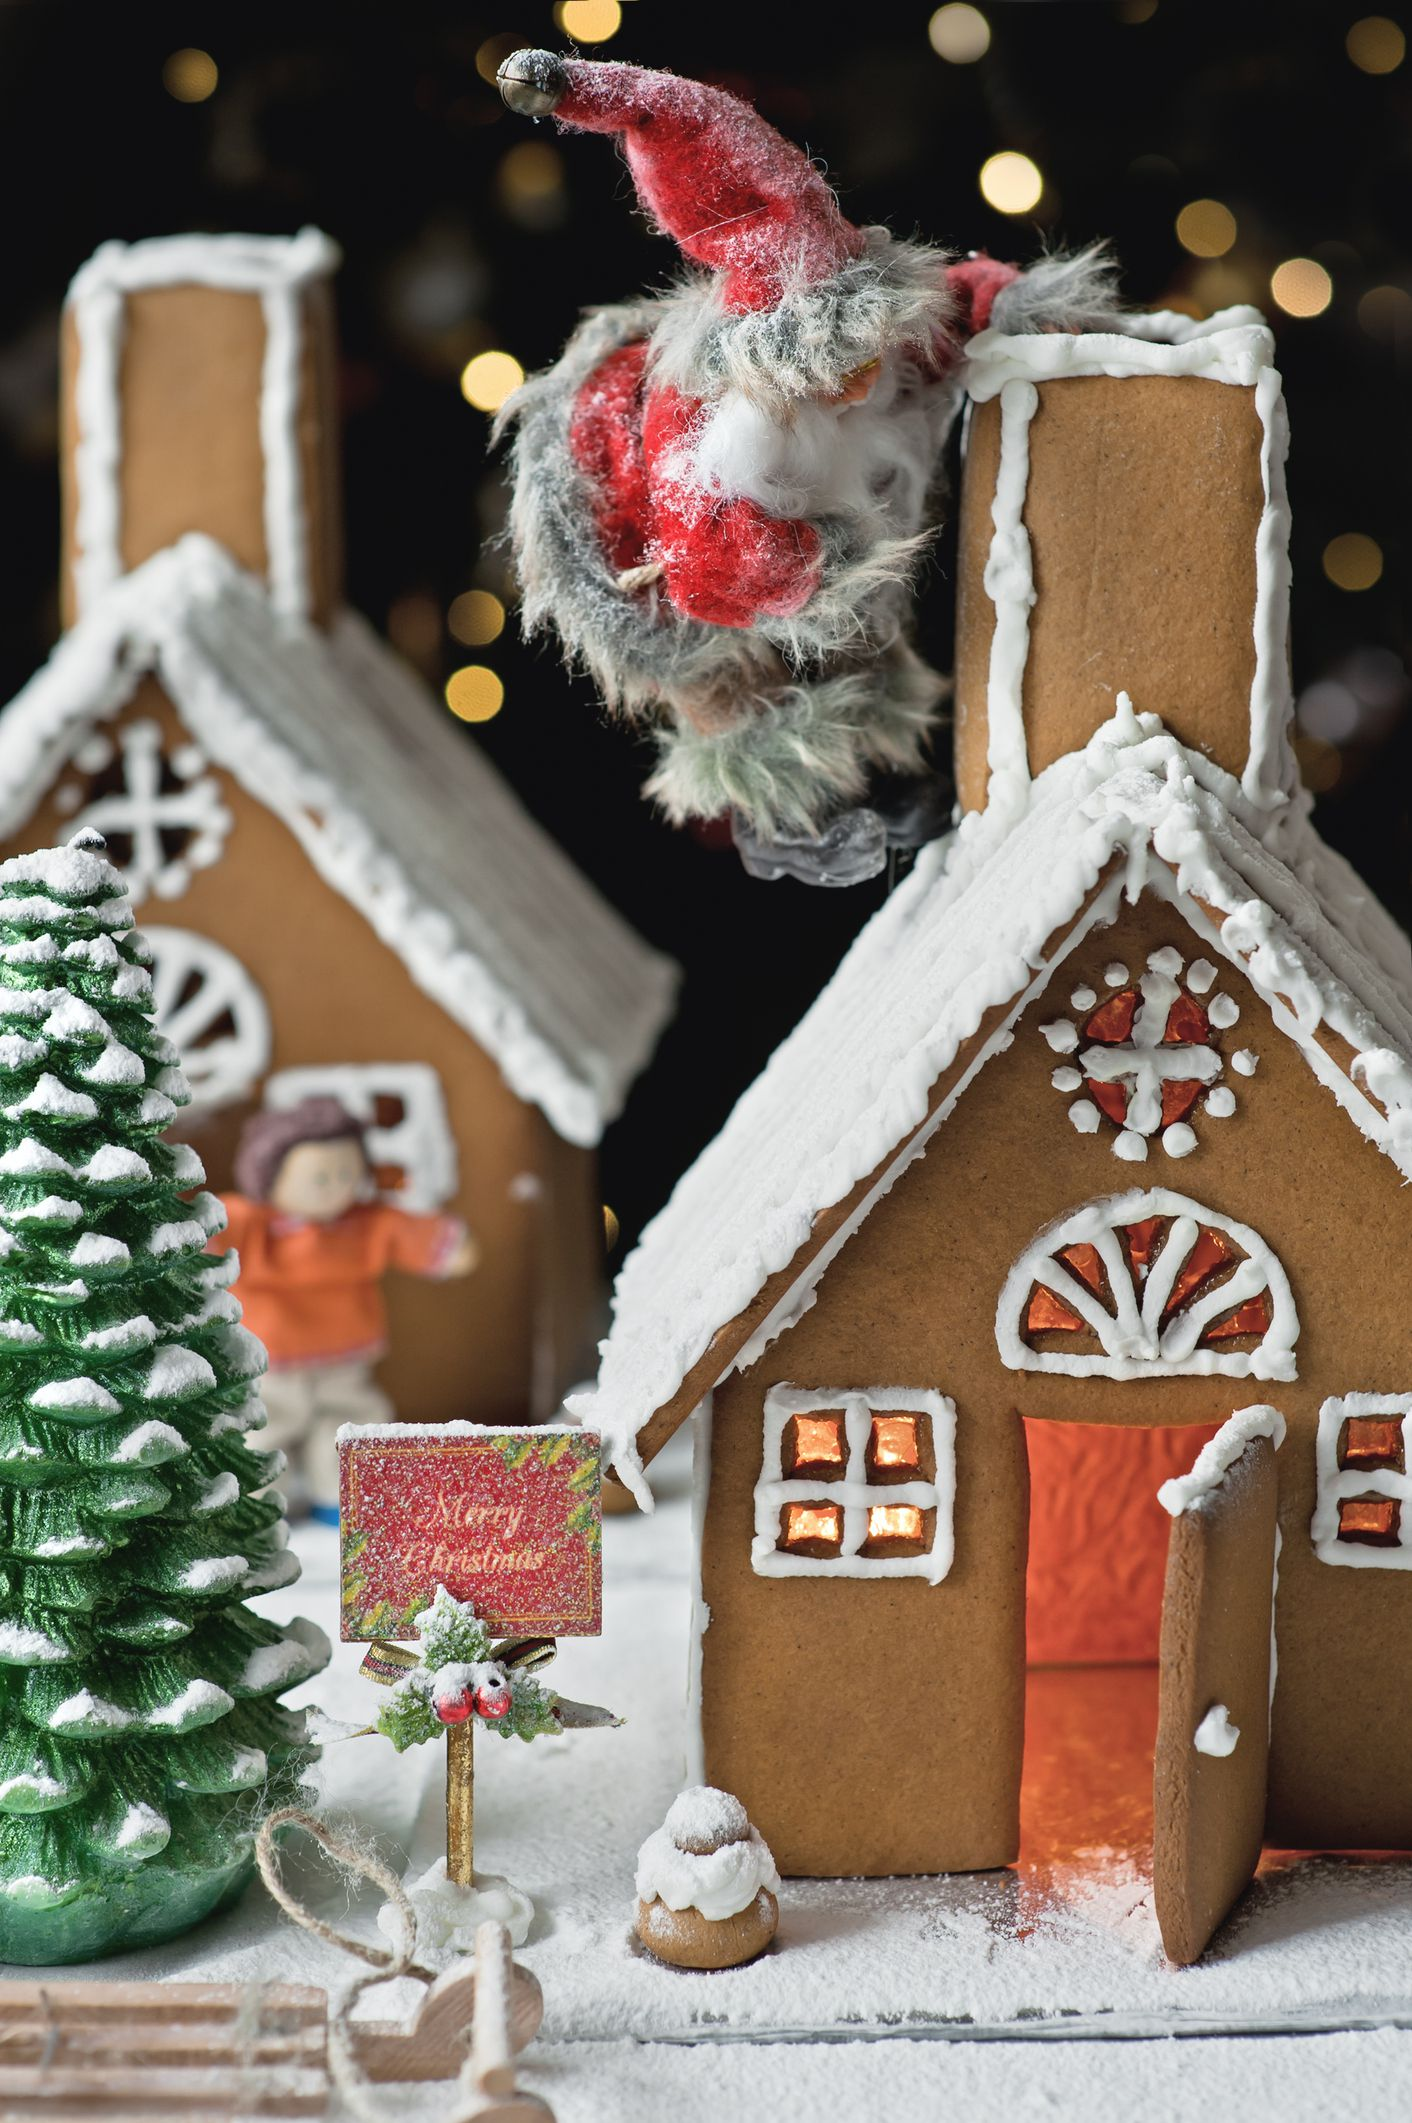 GettyImages-165186367-583067f13df78c6f6a27f0db Gingerbread House Interior Design on gingerbread house colors, gingerbread house style, gingerbread house architecture, gingerbread house office, gingerbread house photography, gingerbread house pottery barn, gingerbread house kitchen, gingerbread house home, gingerbread house landscaping, gingerbread house decor, gingerbread house vintage, gingerbread house fabric, gingerbread house flowers, gingerbread house diy, gingerbread house green, gingerbread house inspiration, gingerbread house art, gingerbread house furniture, gingerbread house floor, gingerbread house garden,